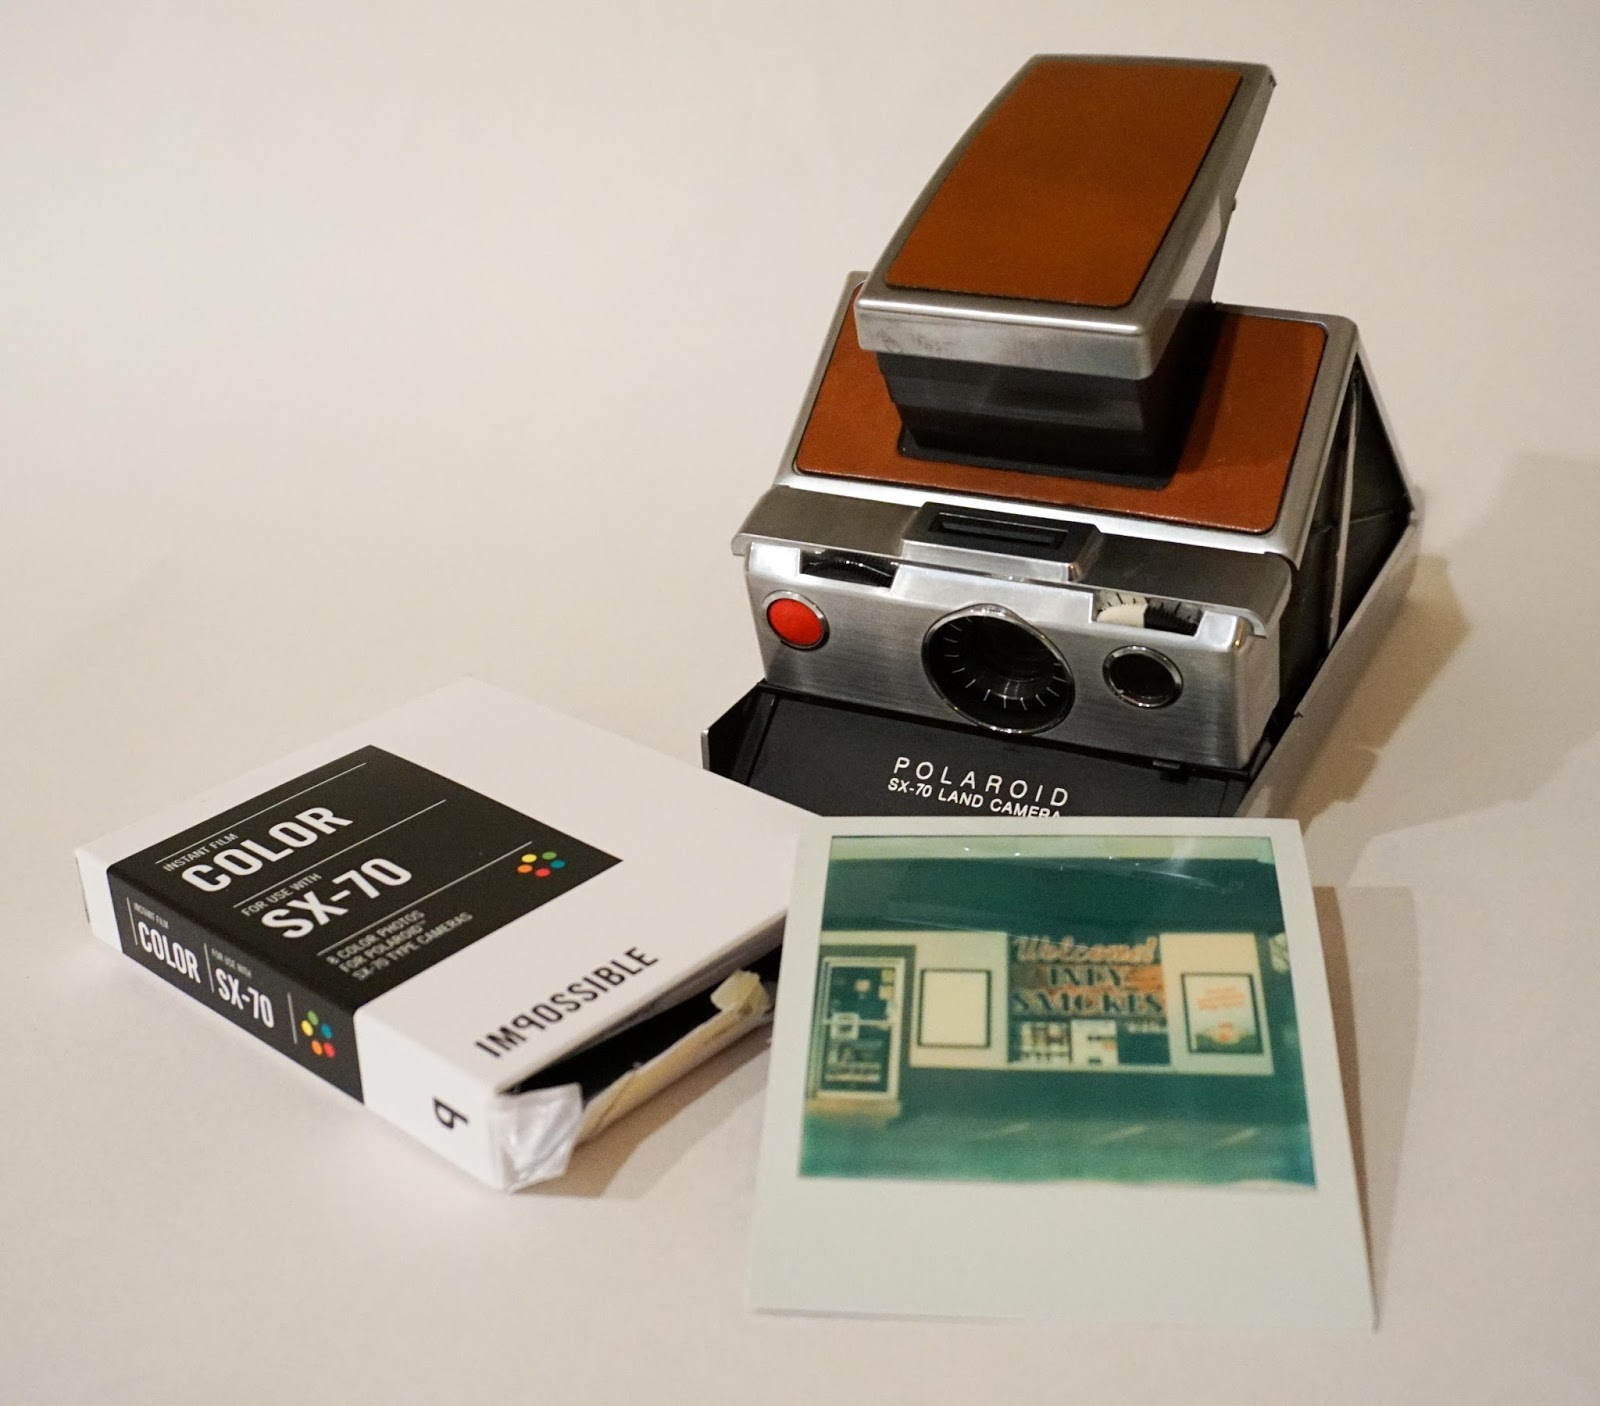 Can Polaroid 600 film be used in a SX-70 camera? | Yahoo ...